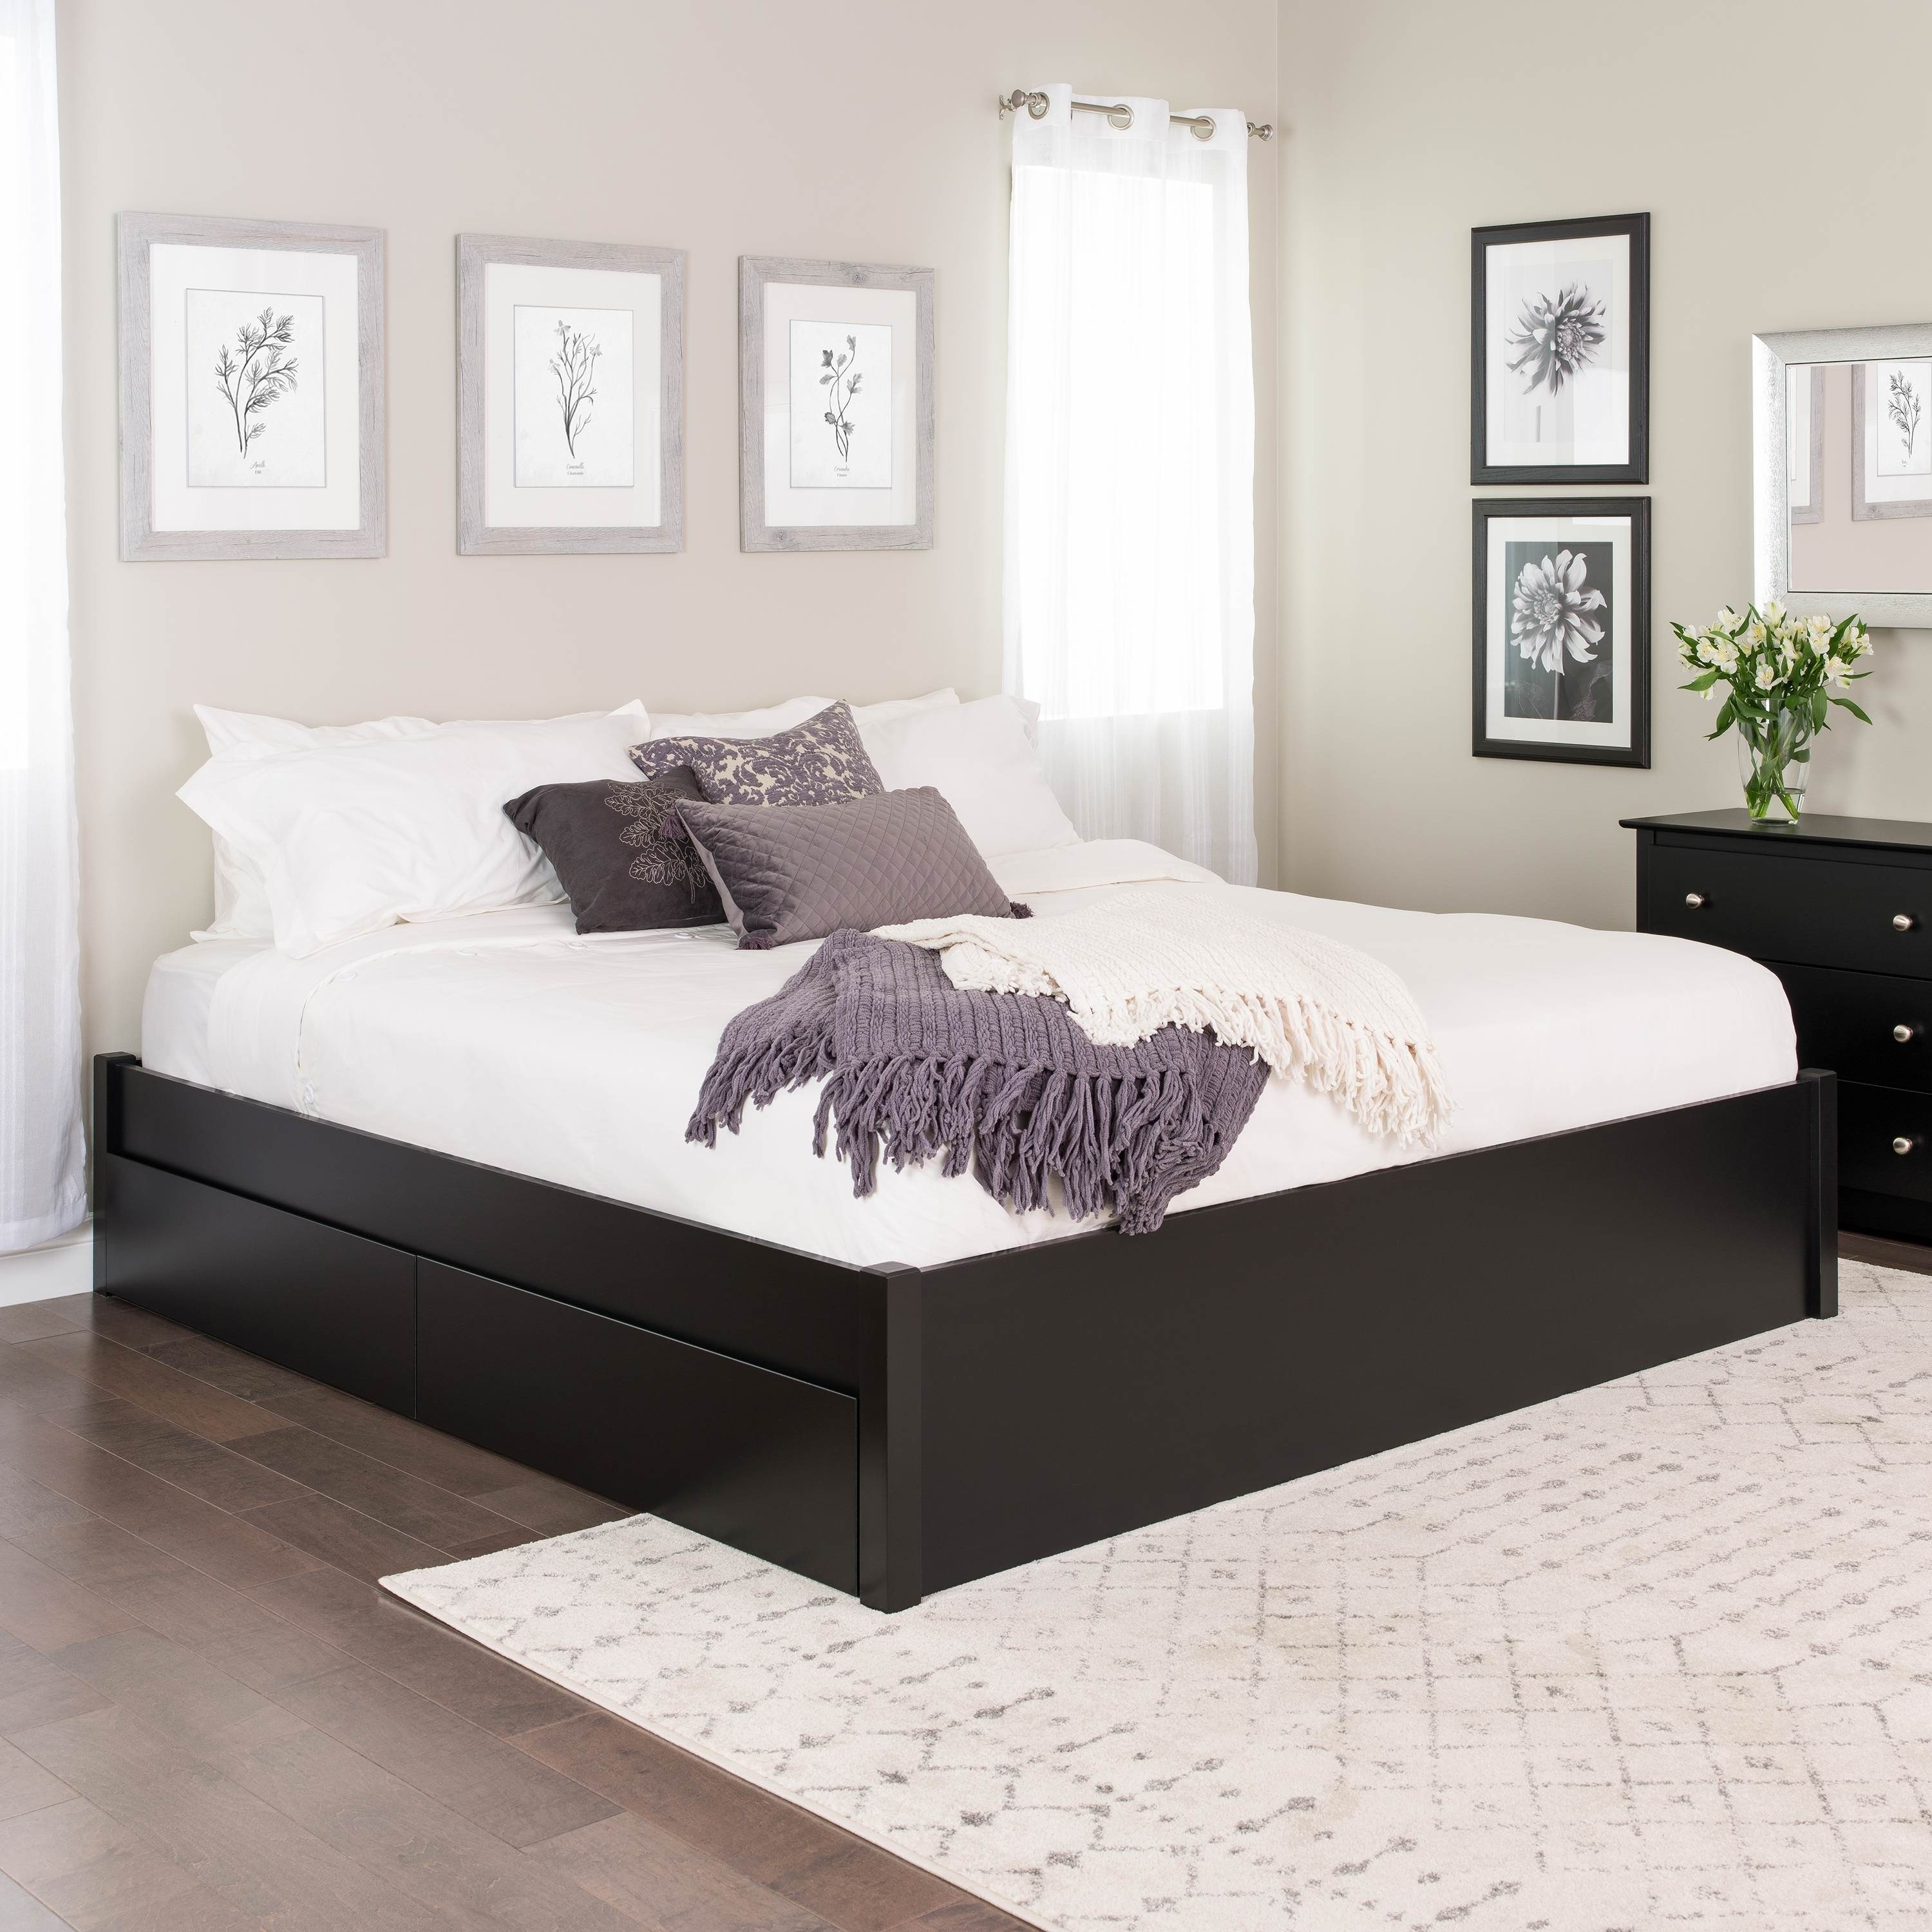 Buy Storage Beds line at Overstock